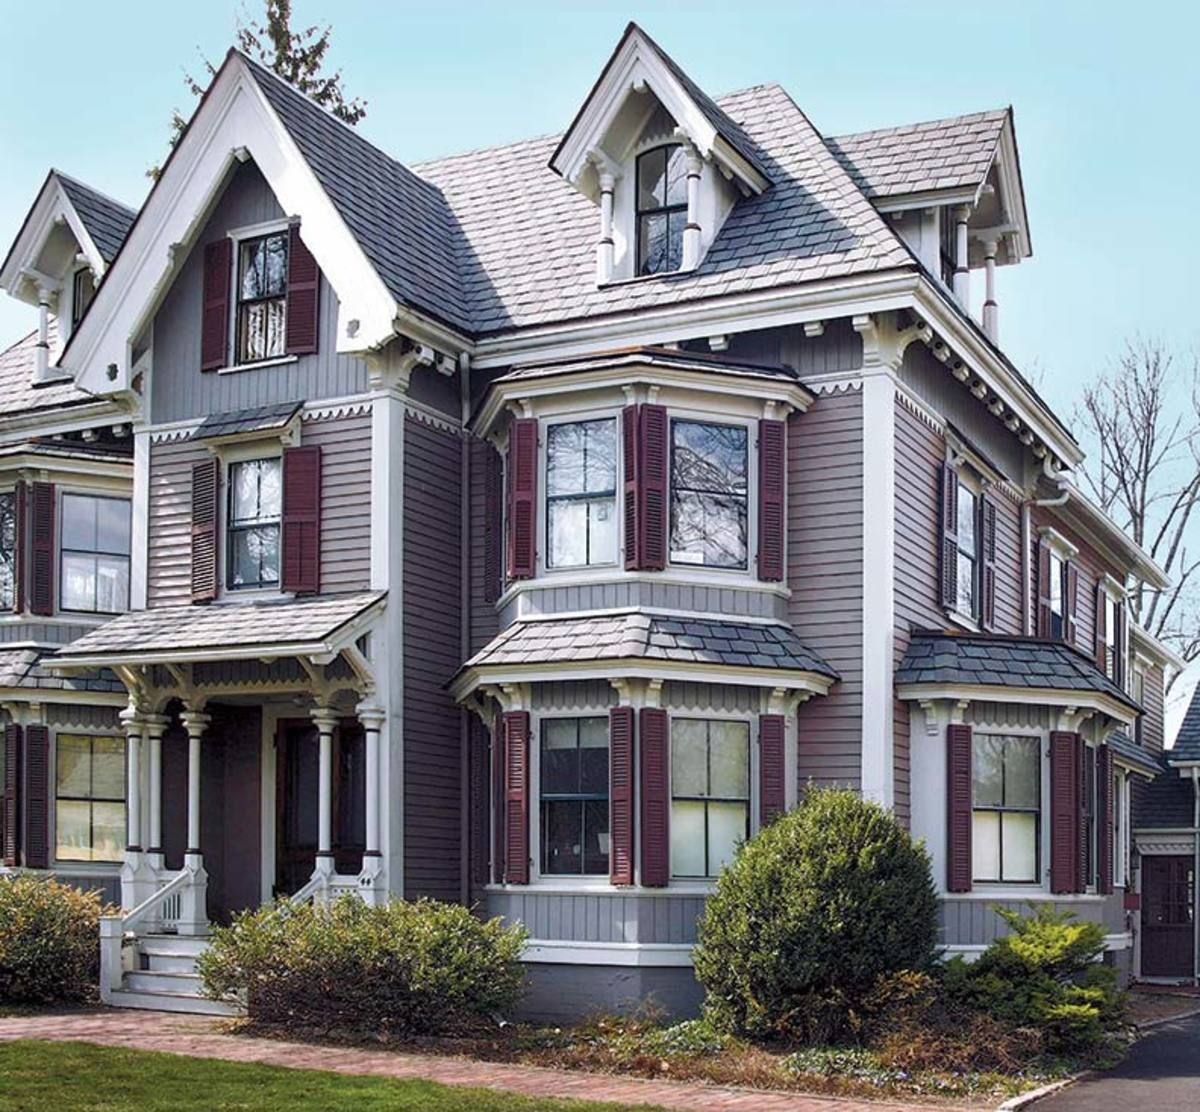 Pin By Kathy Flynn On Queen Anne Victorian Homes Exterior Exterior Paint Colors For House Victorian House Colors